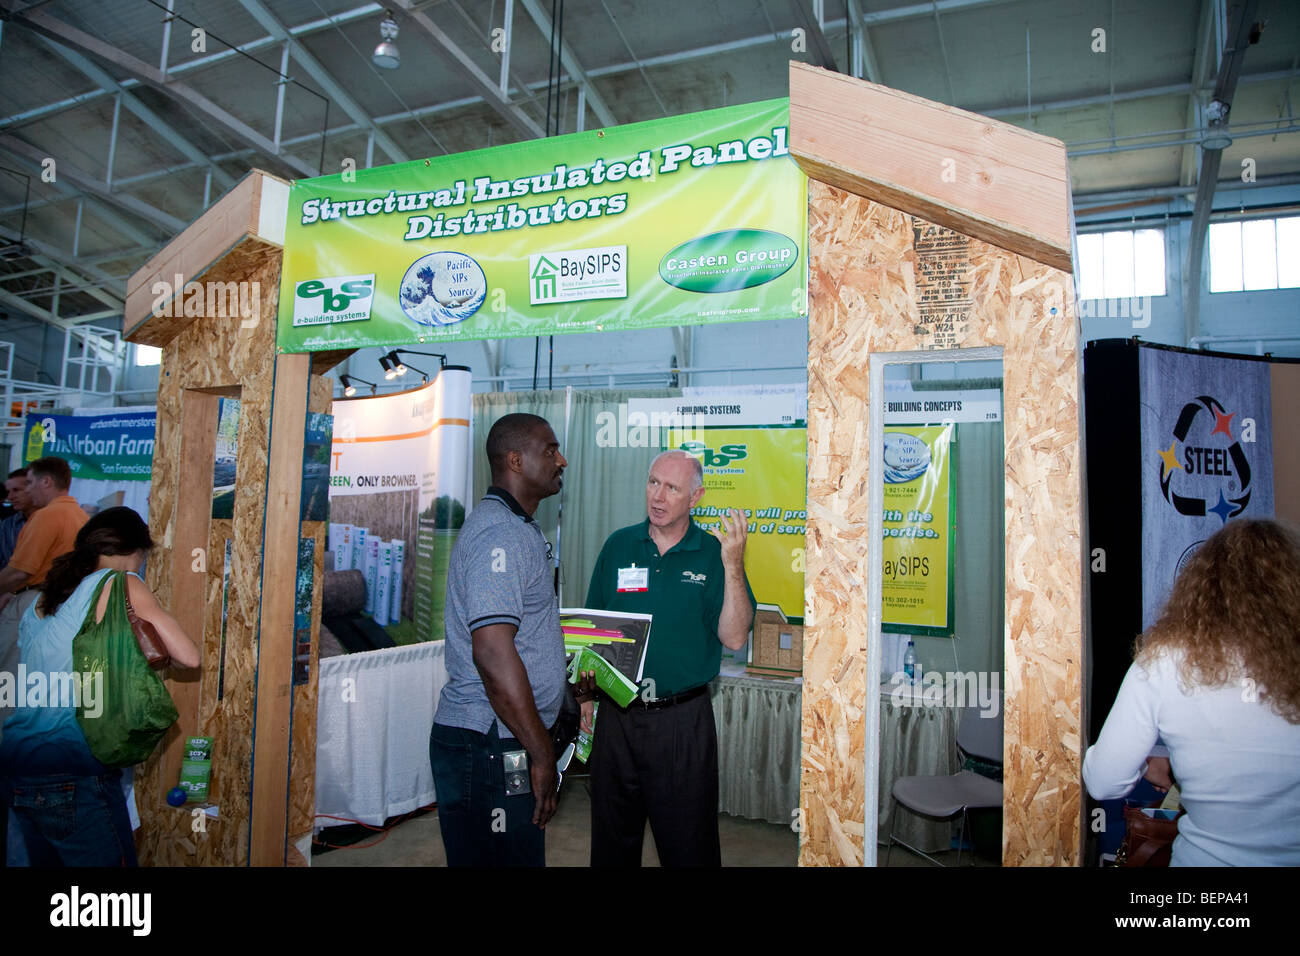 Structural insulated panels exhibit booth promoting building energy